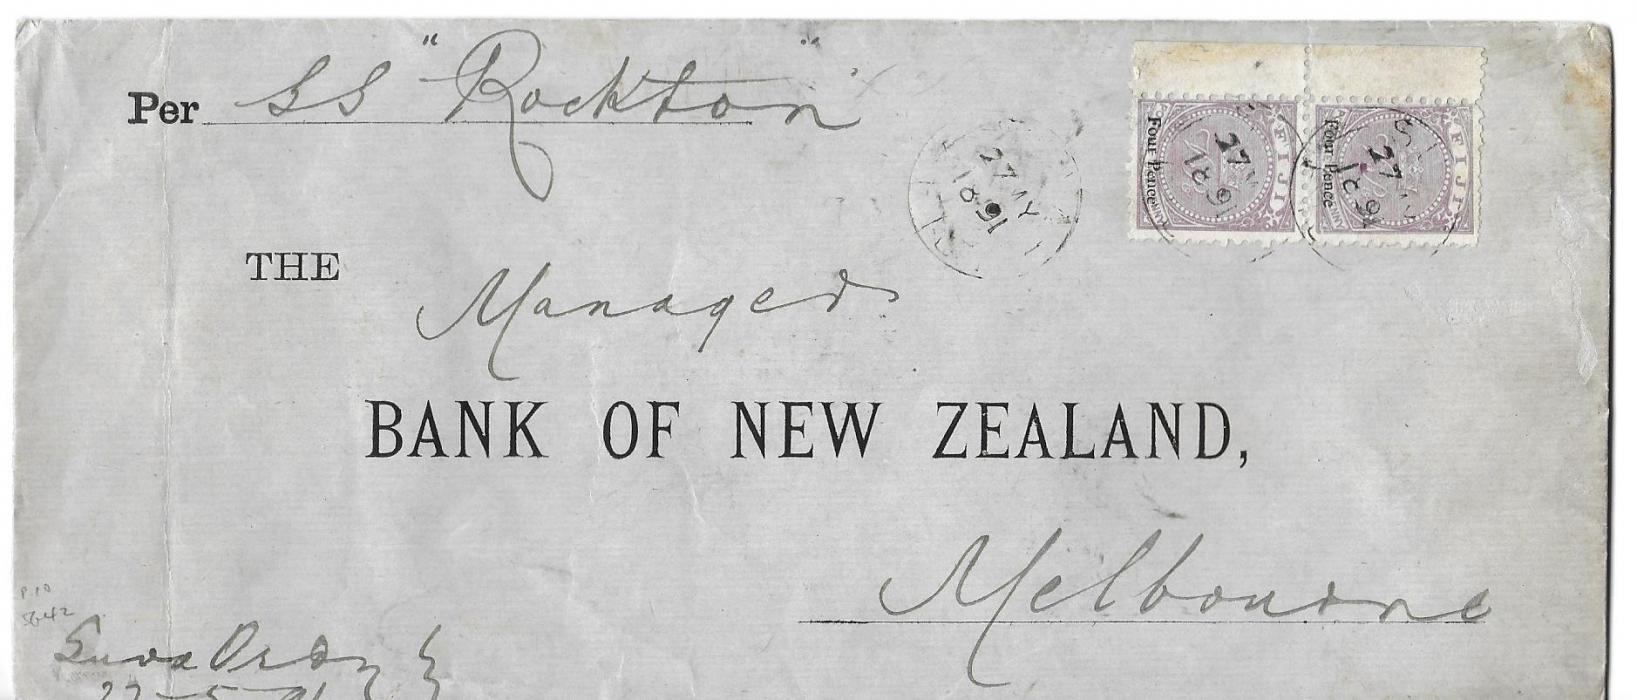 Fiji 1891 (7 JA)  long cover to Bank of New Zealand, Melbourne to be carried by �S.S. Rockton� franked vertical pair Four Pence on 1d. tied Suva cds, reverse with two complete red wax seals of bank and Melbourne arrival cds of JA 16; envelope roughly opened on reverse.